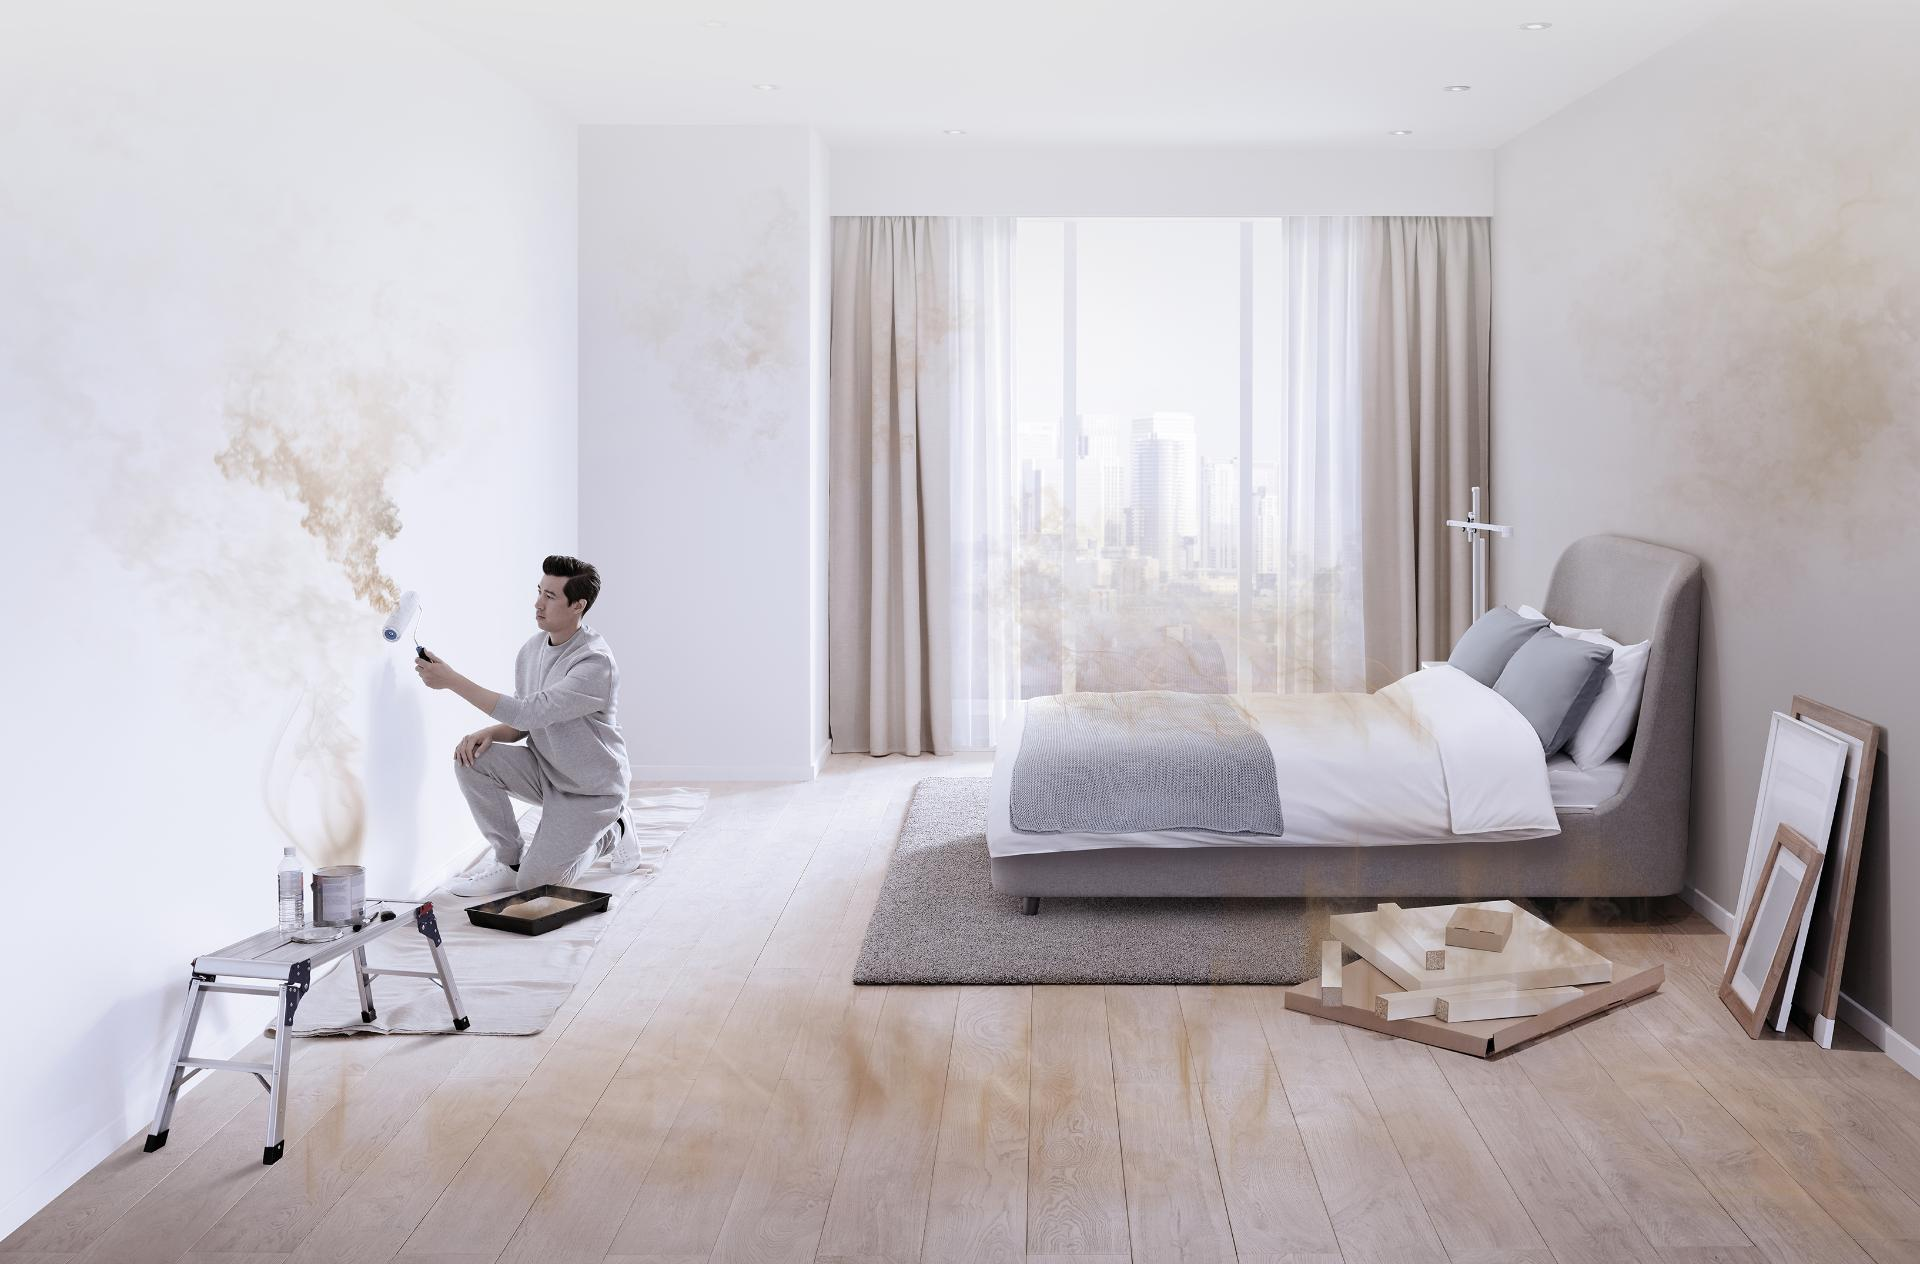 A man paints a room, while particles and gases pollute the air around him